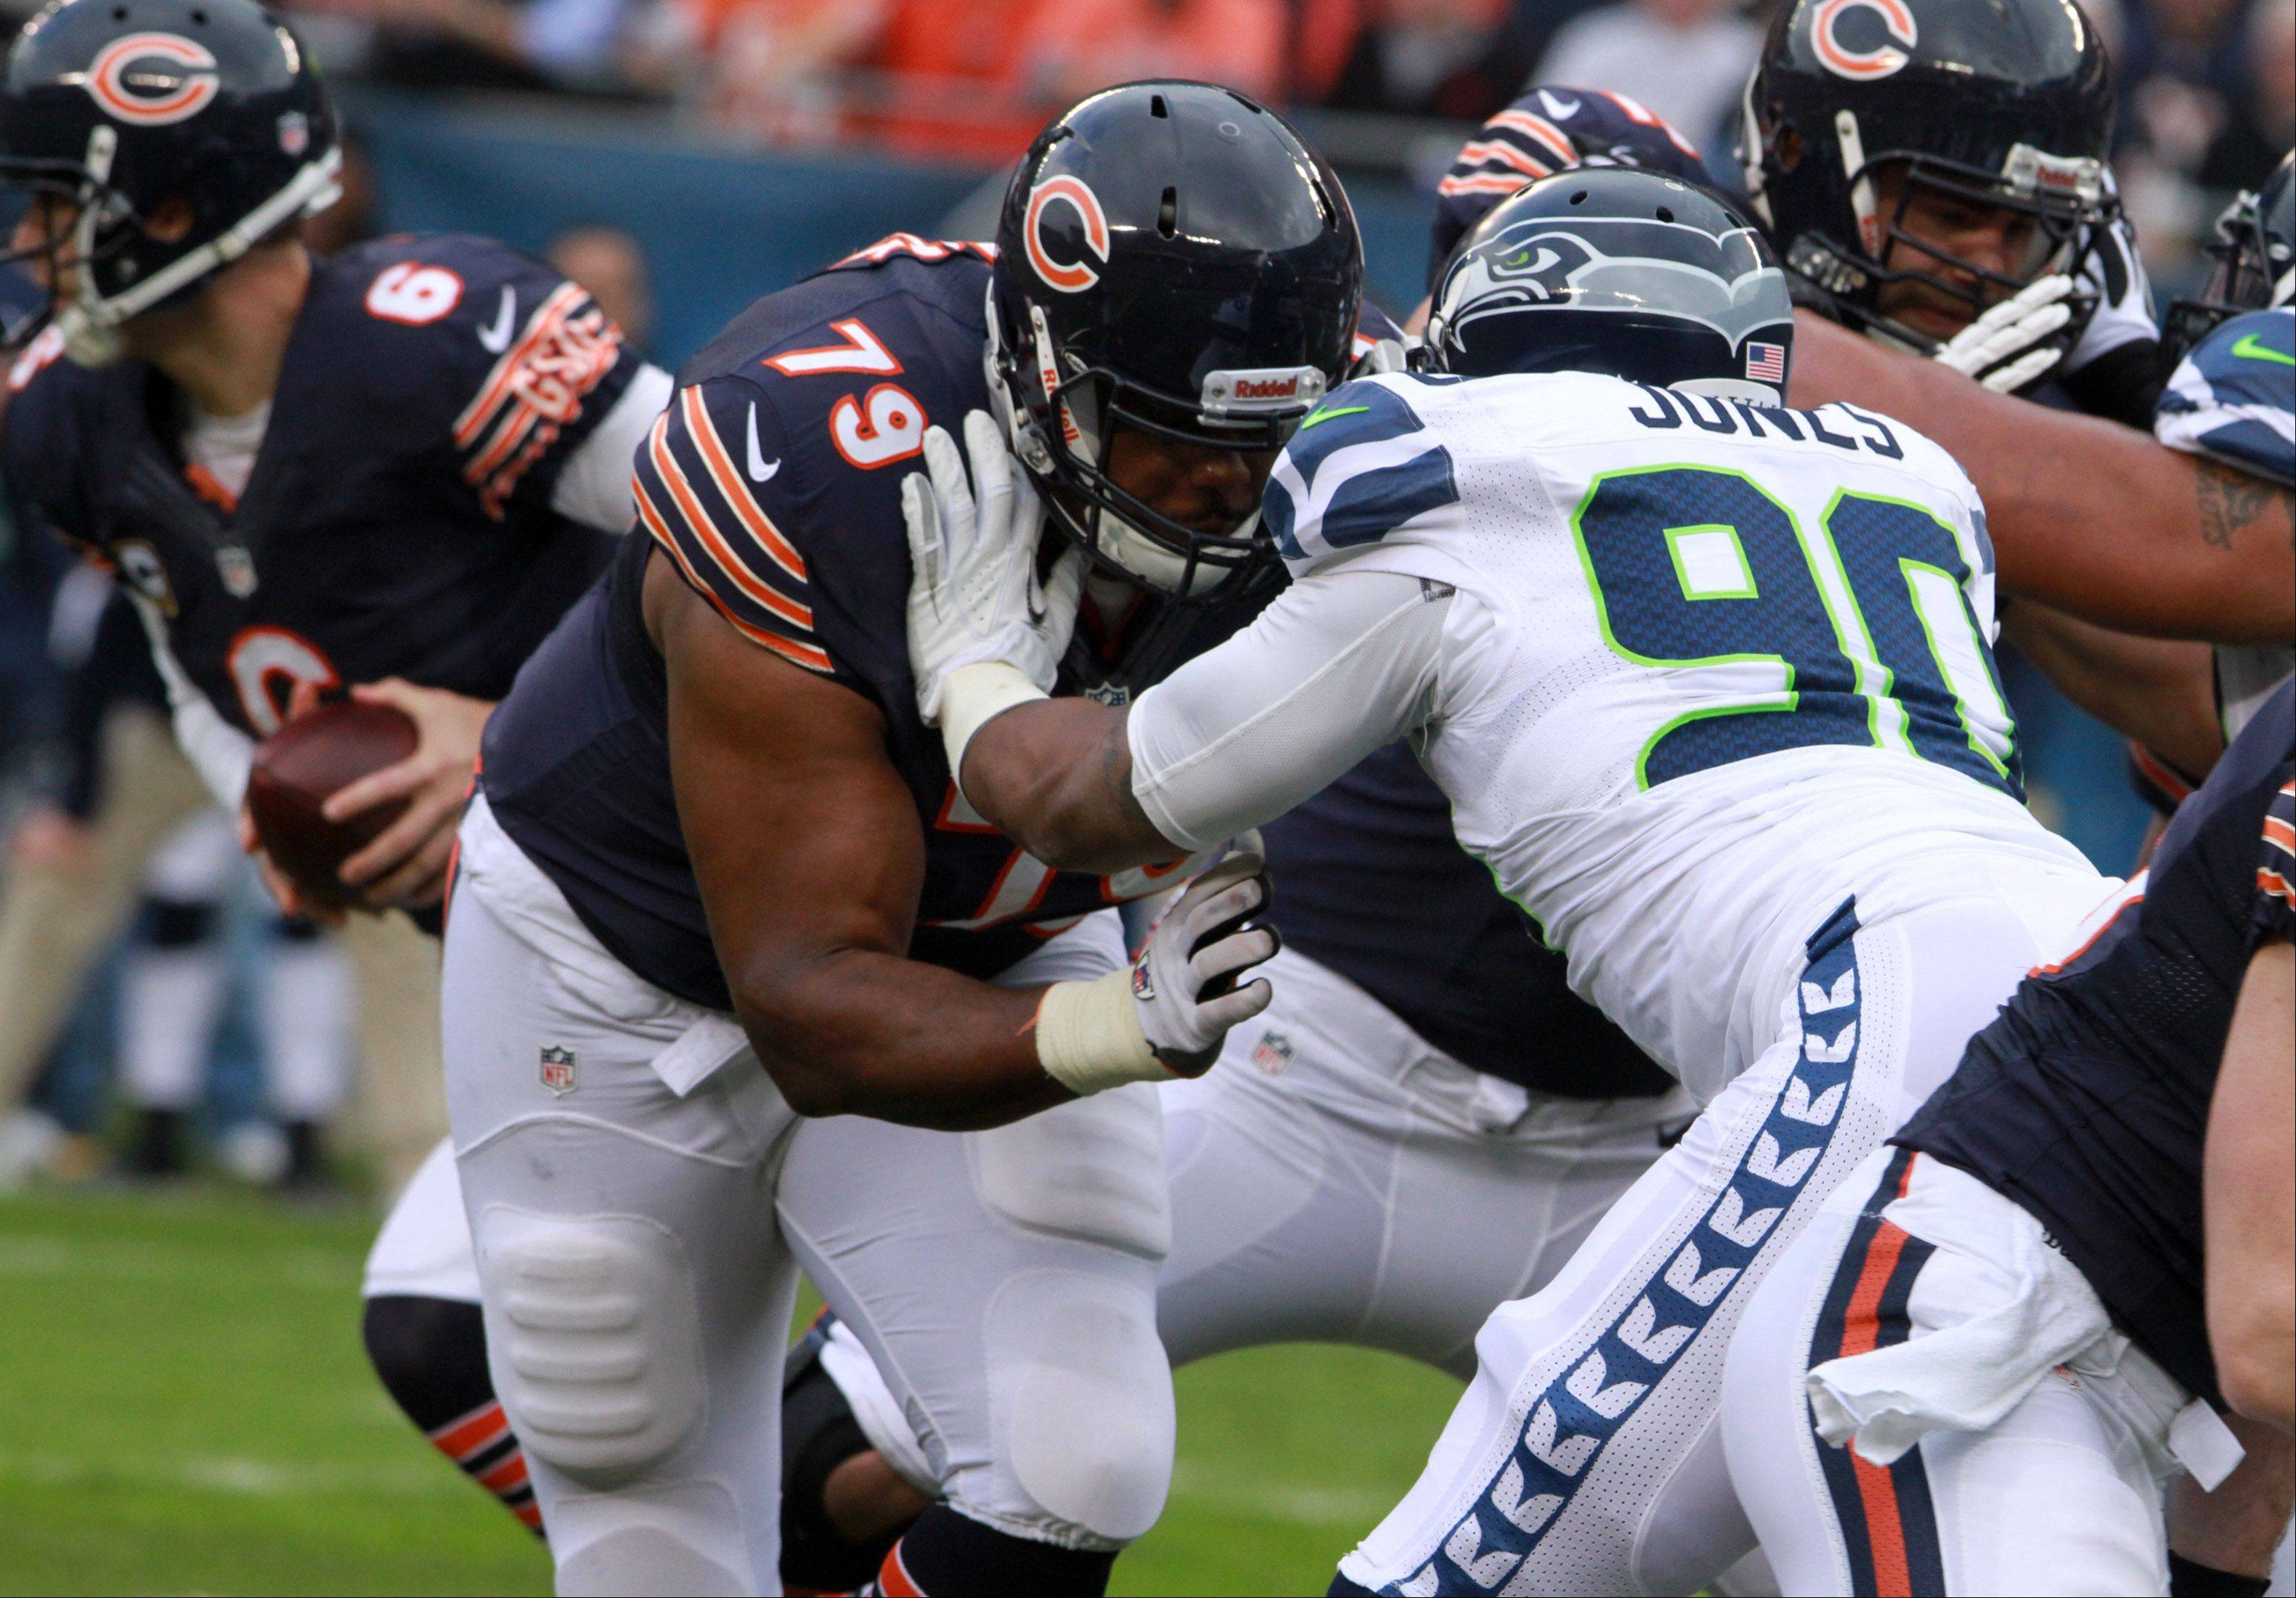 Chicago Bears tackle Jonathan Scott blocks Seattle Seahawks defensive end Jason Jones as Cutler looks to hand the ball off at Soldier Field on Sunday.